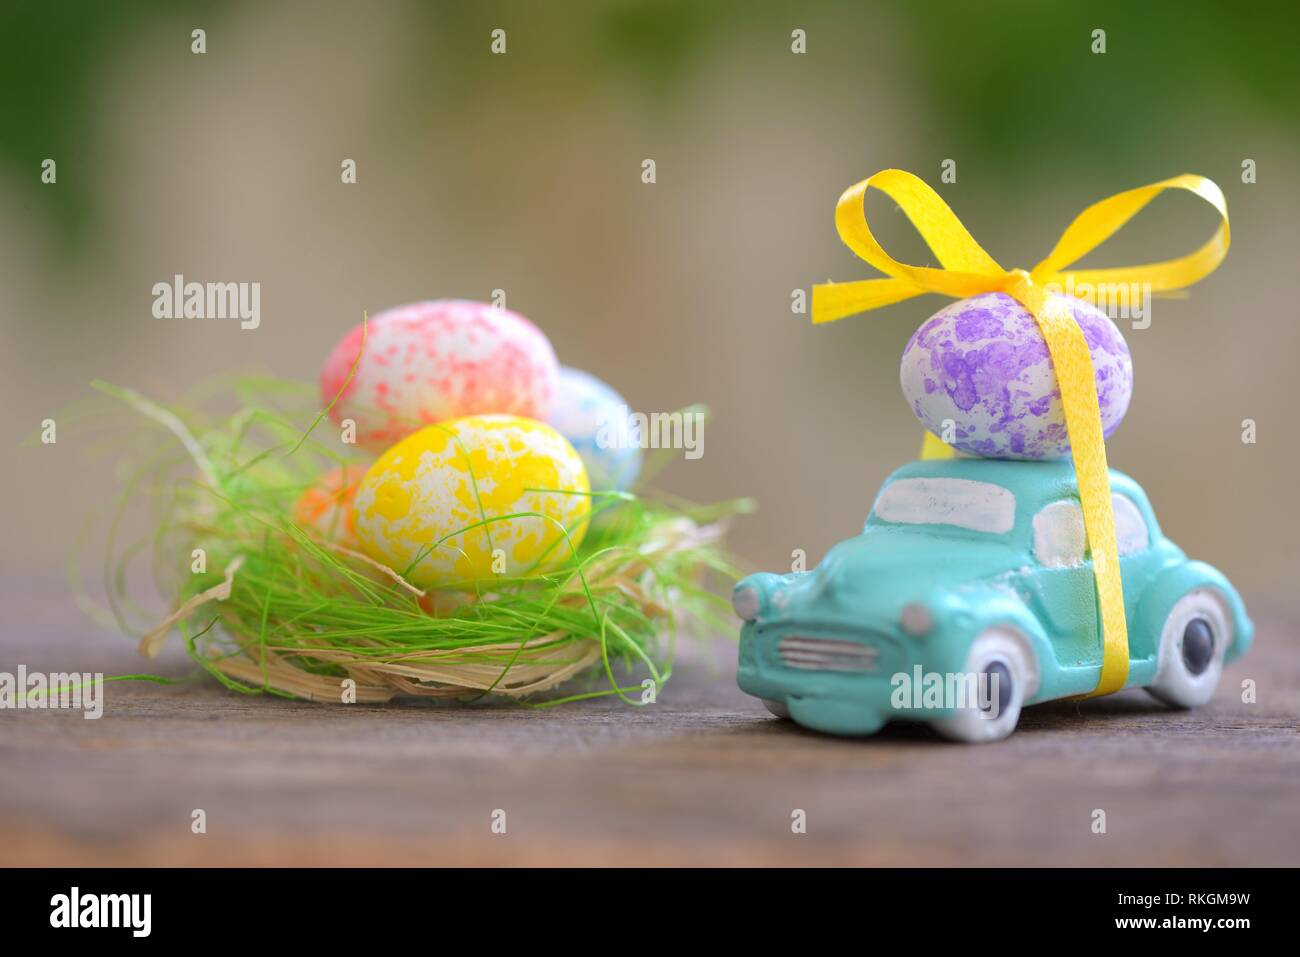 Toy car carrying easter egg in spring time. Stock Photo